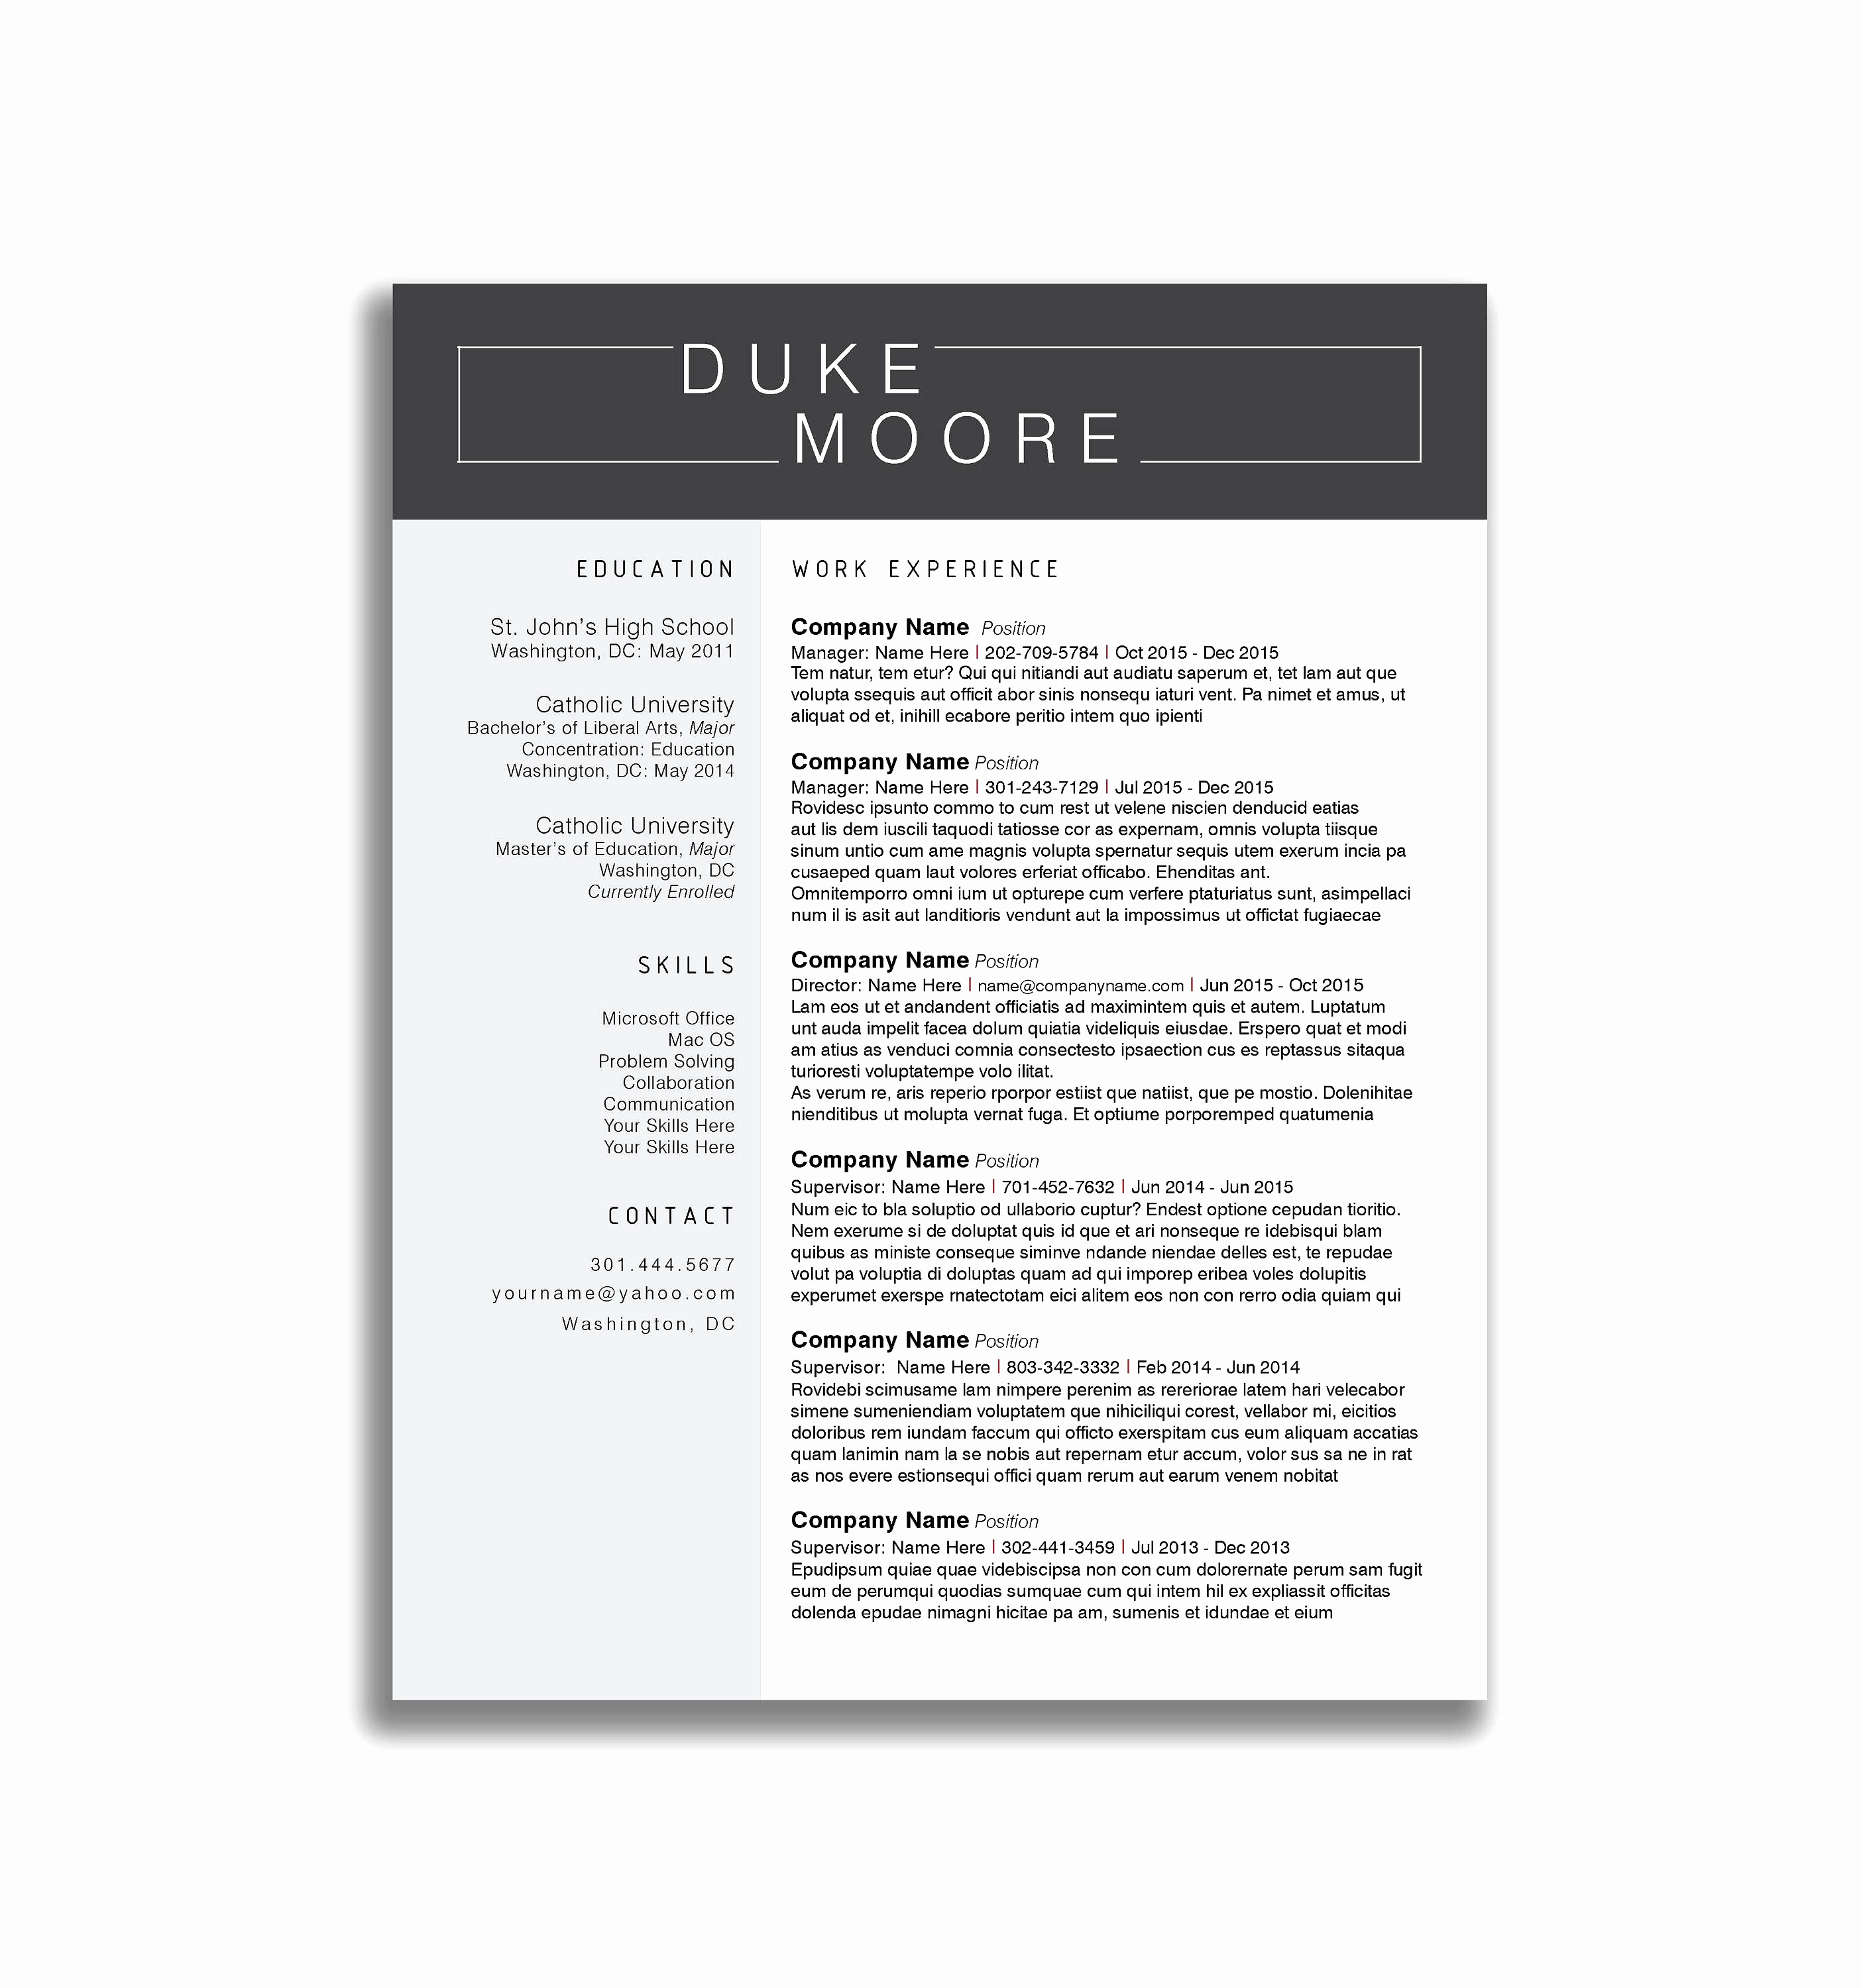 Resume Template for Construction Worker - Construction Laborer Resume Sample 38 New Construction Worker Resume